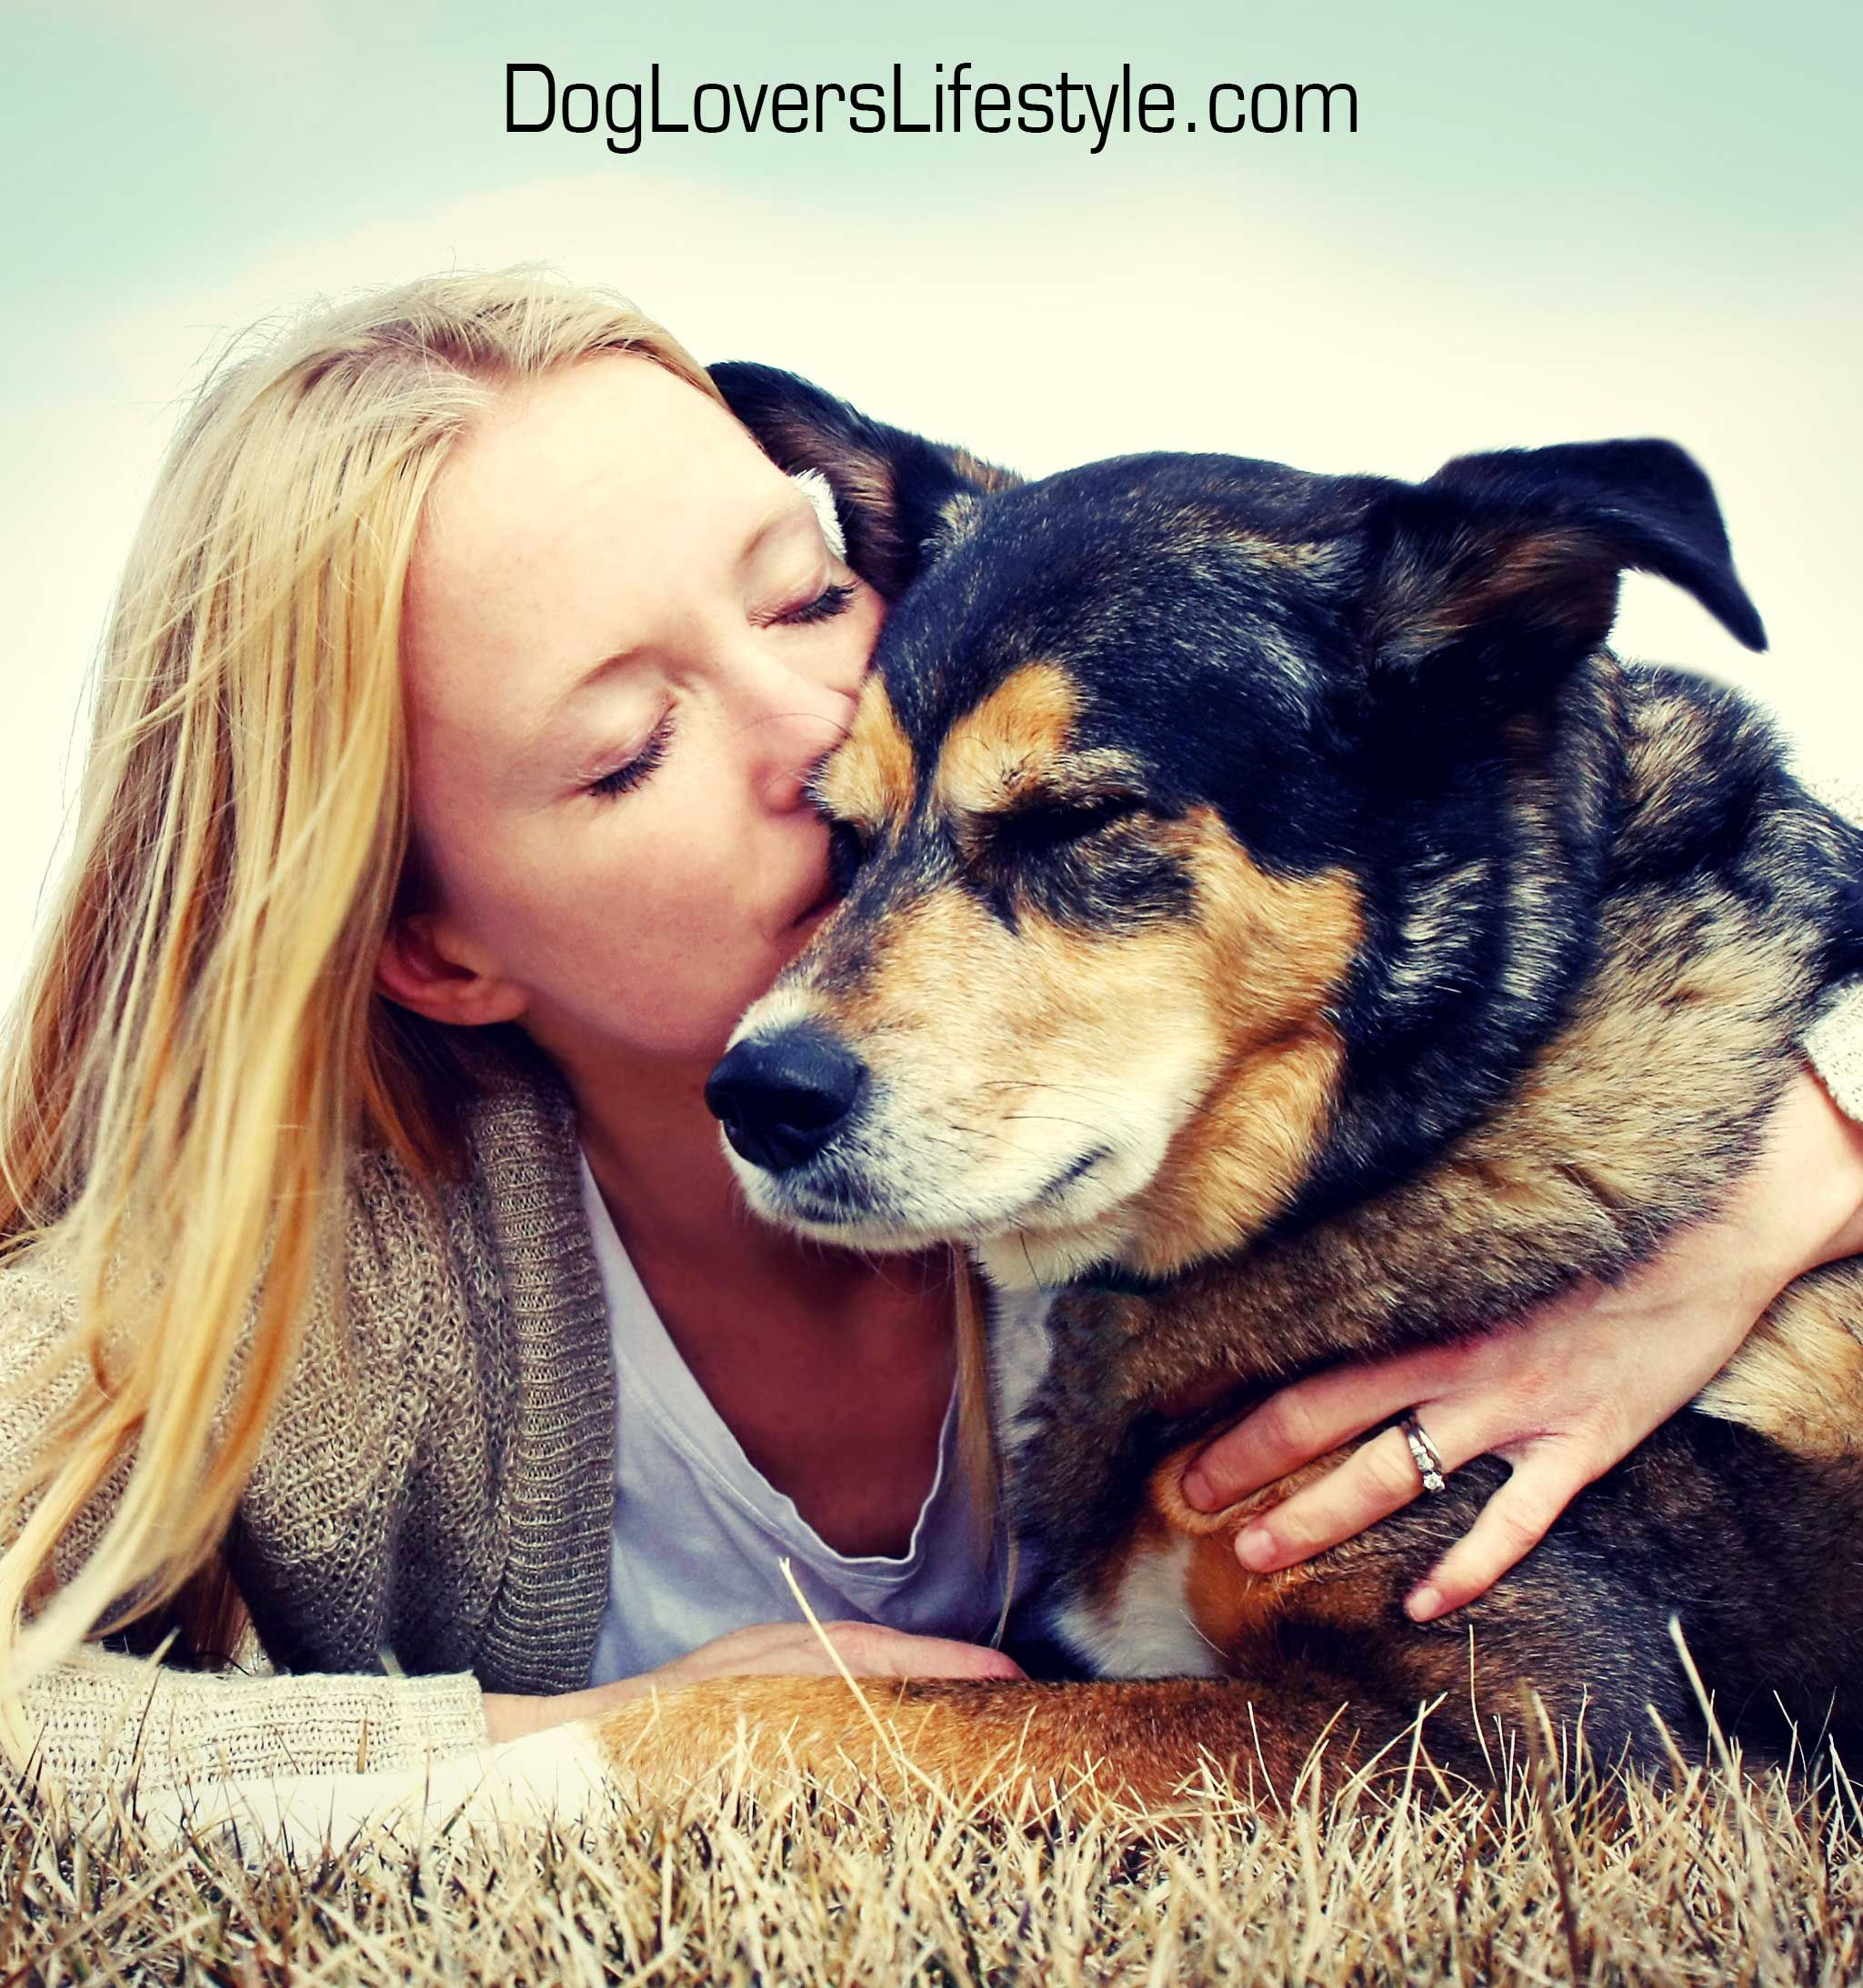 Dog lovers lifestyle please visit https